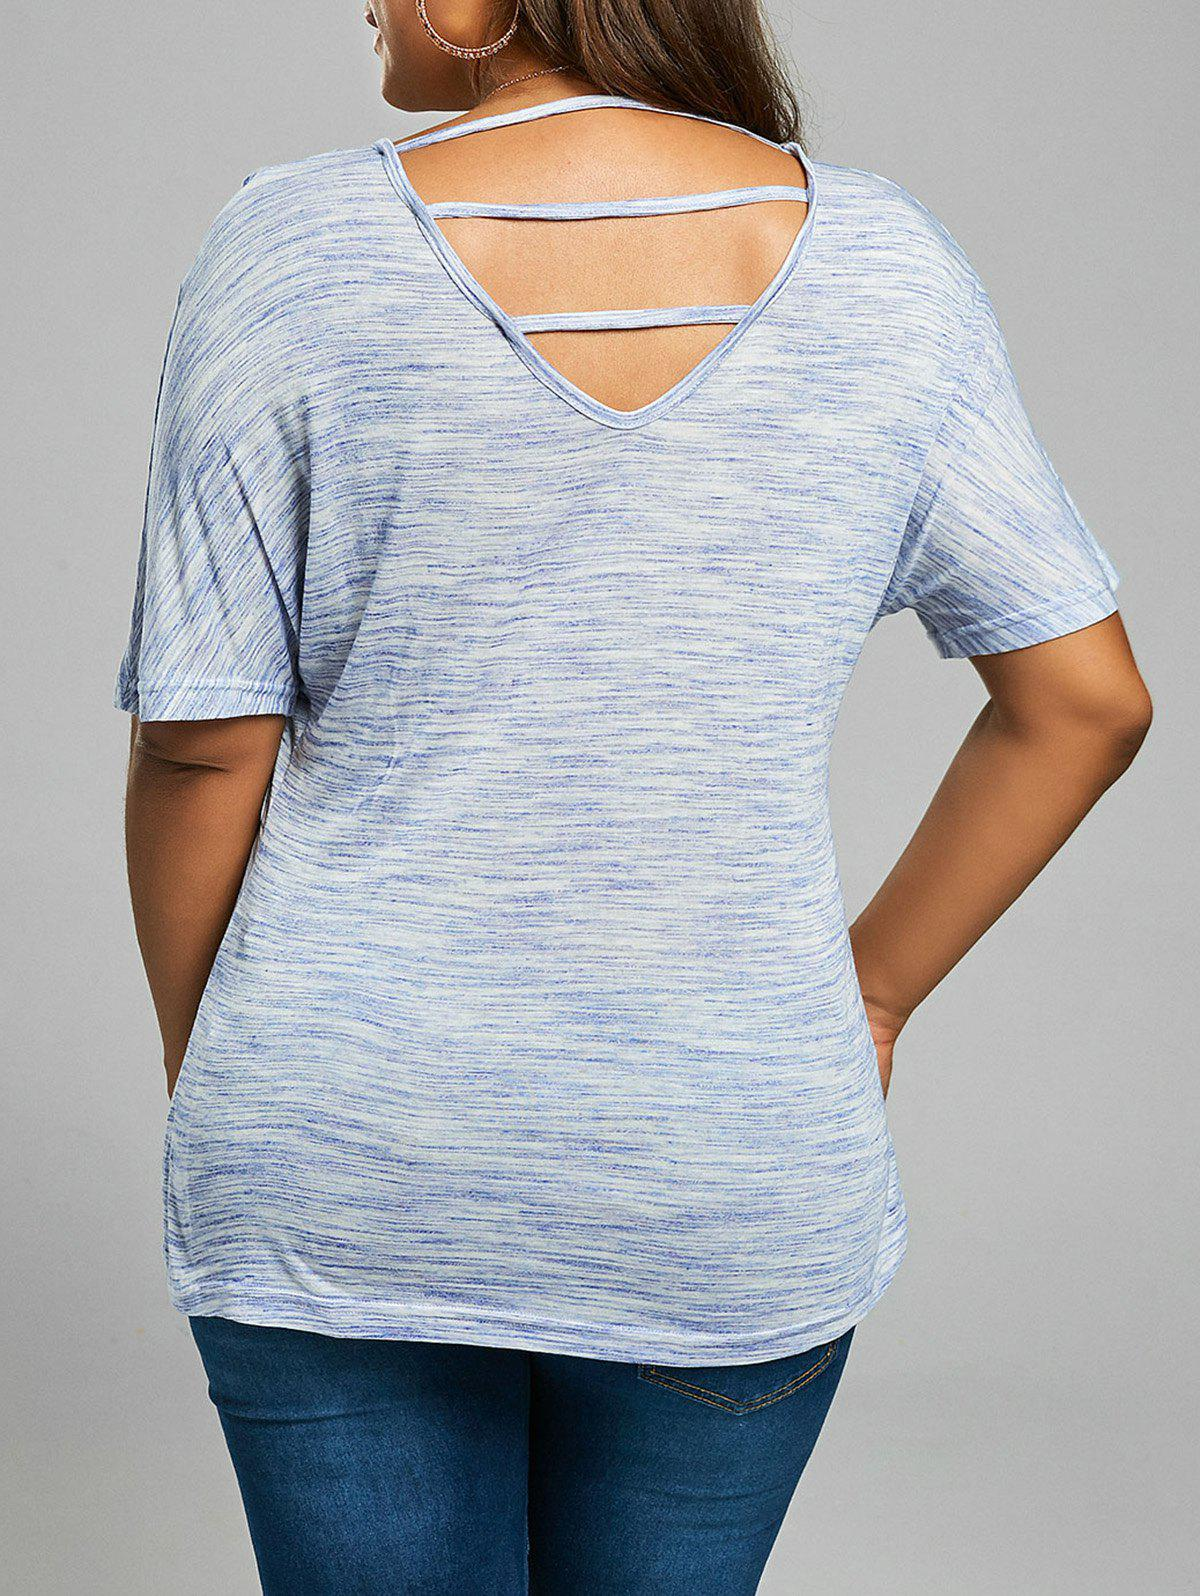 Back cutout plus size v neck tee shirt blue gray xl in for V neck back shirt